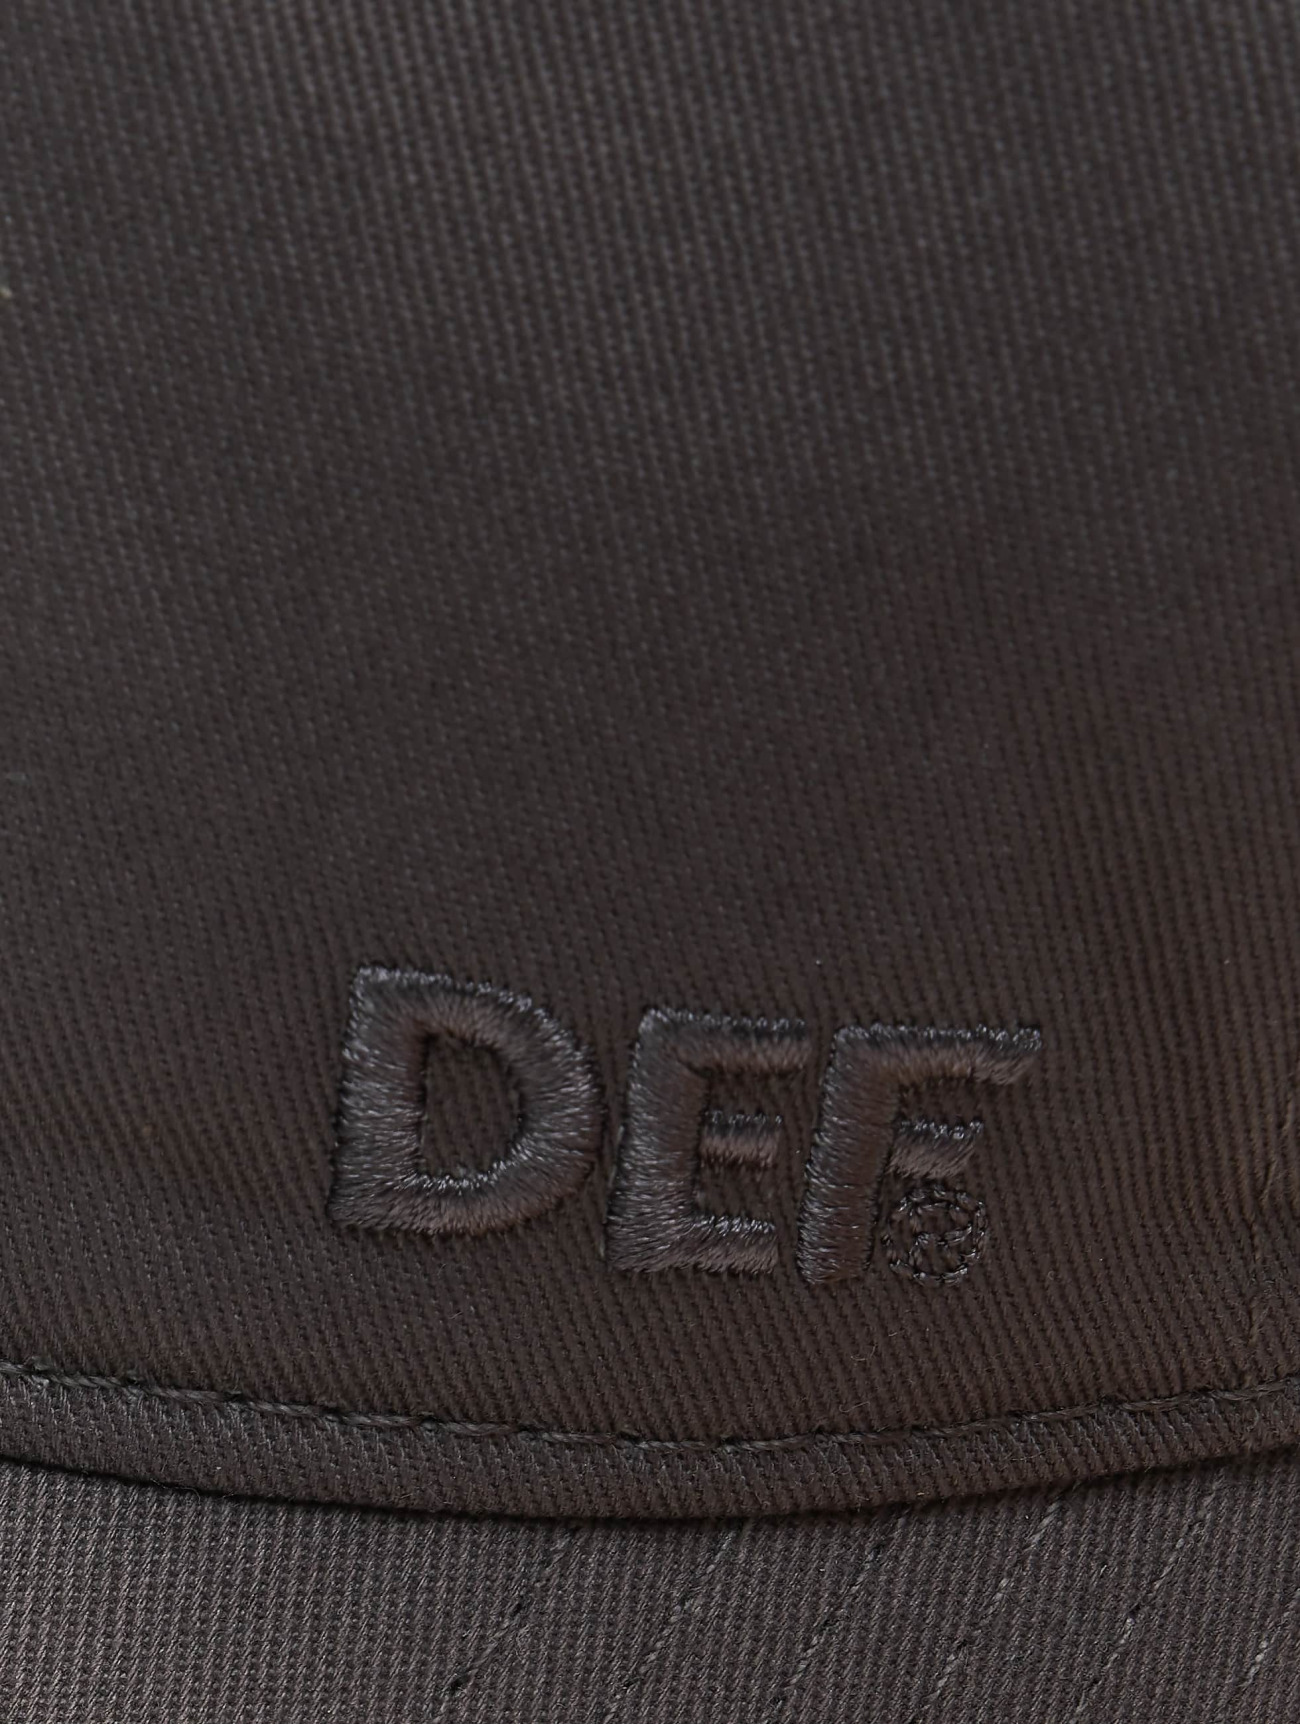 DEF  Daddy   gris  Casquette Snapback & Strapback  748712 Homme Casquettes